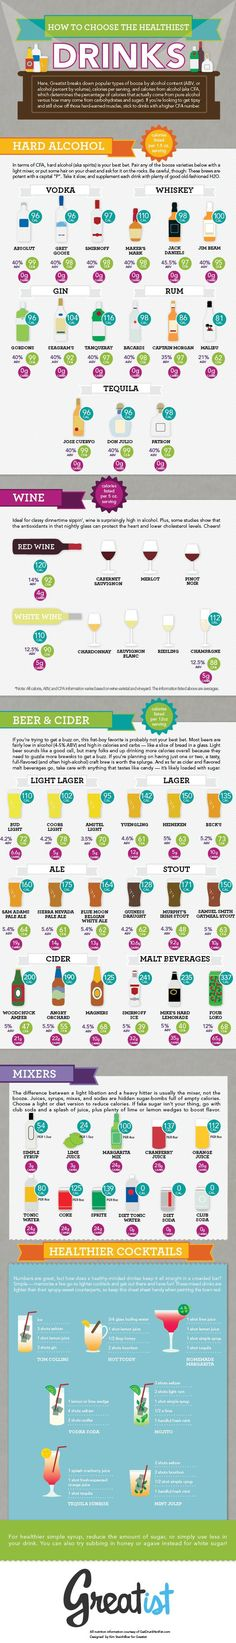 How to choose the healthiest #beer, #wine and #cocktail! via @Greatist